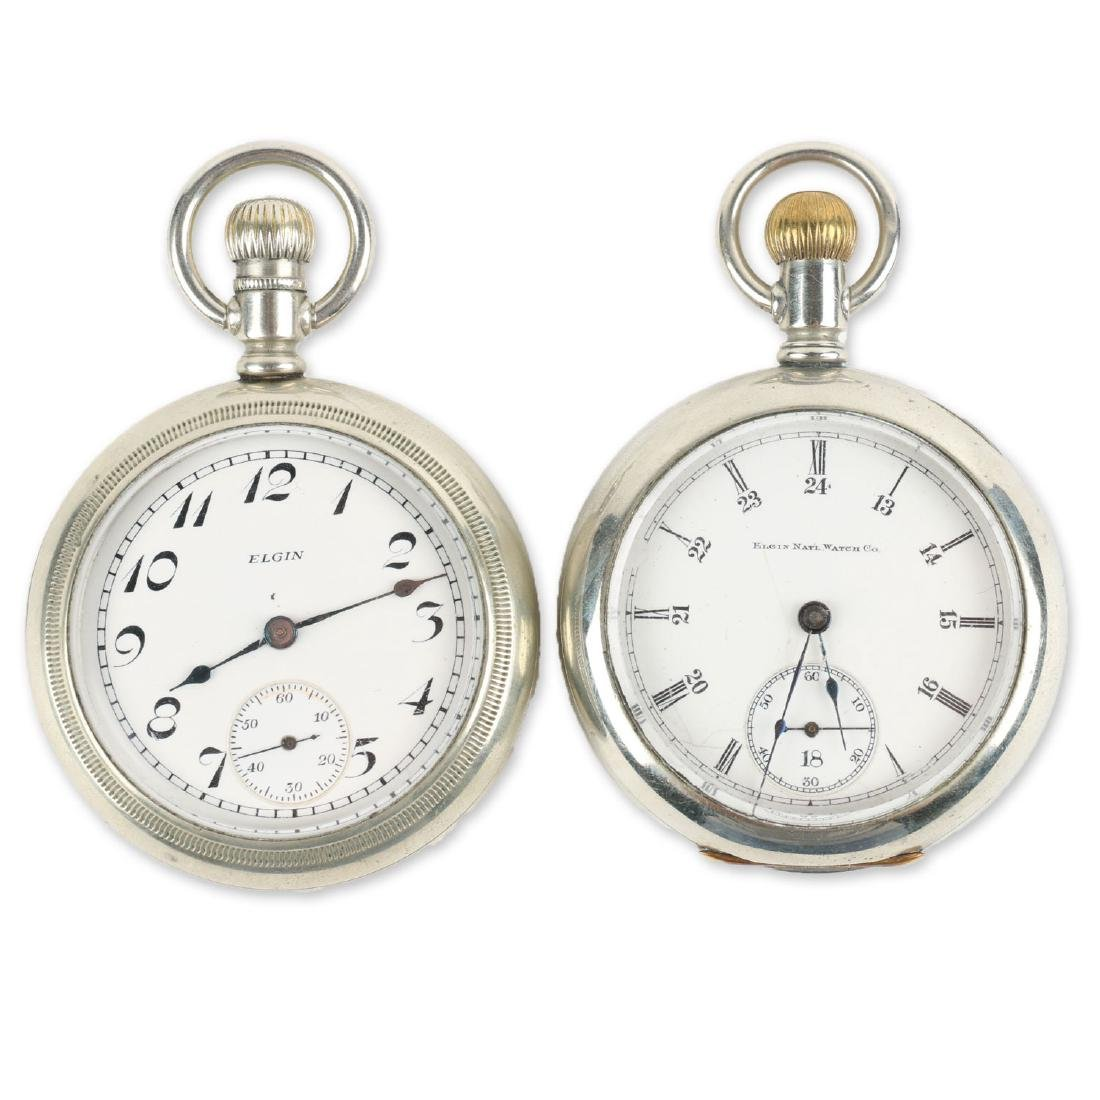 Two (2) 18S Elgin Nickel Silver Pocket Watches